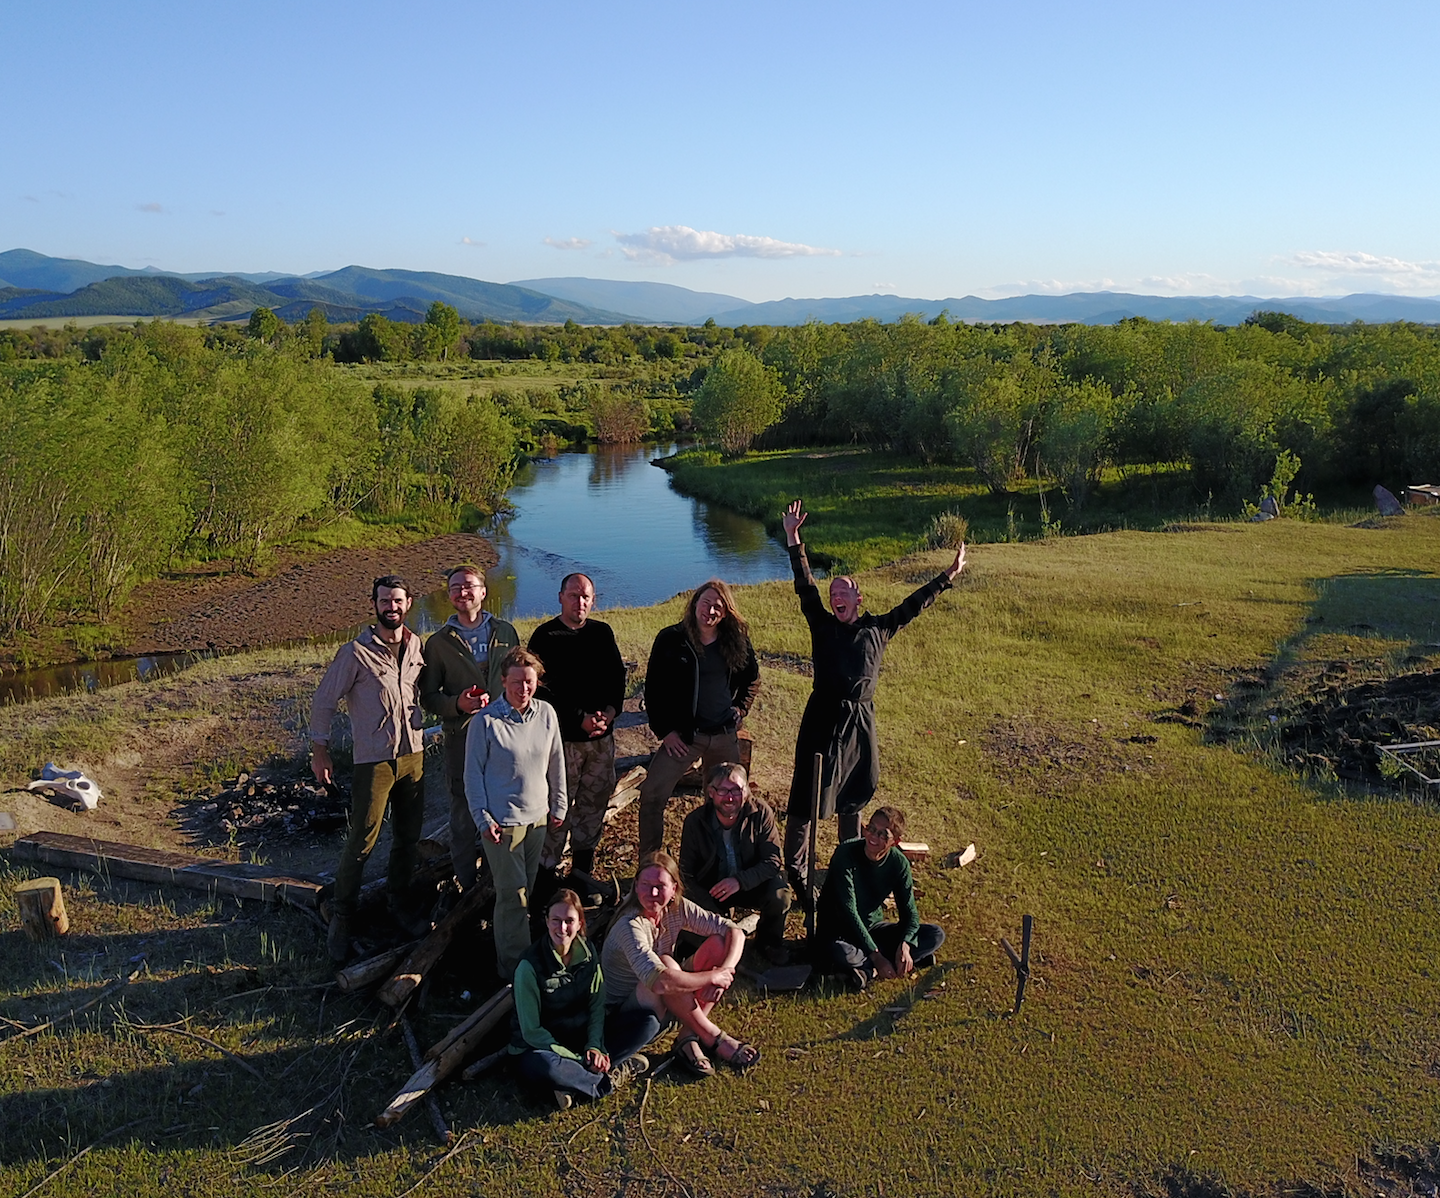 The First Tunnug 1 Expedition Team [Right to Left]: Trevor Wallace, Jegor Blochin, Anatolie Luboshnikov, Gino Caspari, Jegor Mazurkievich, Kasia Langenegger, Maxim Eltsov, Kezhik Mongush, Valeria Makarova, Timur Sadykov